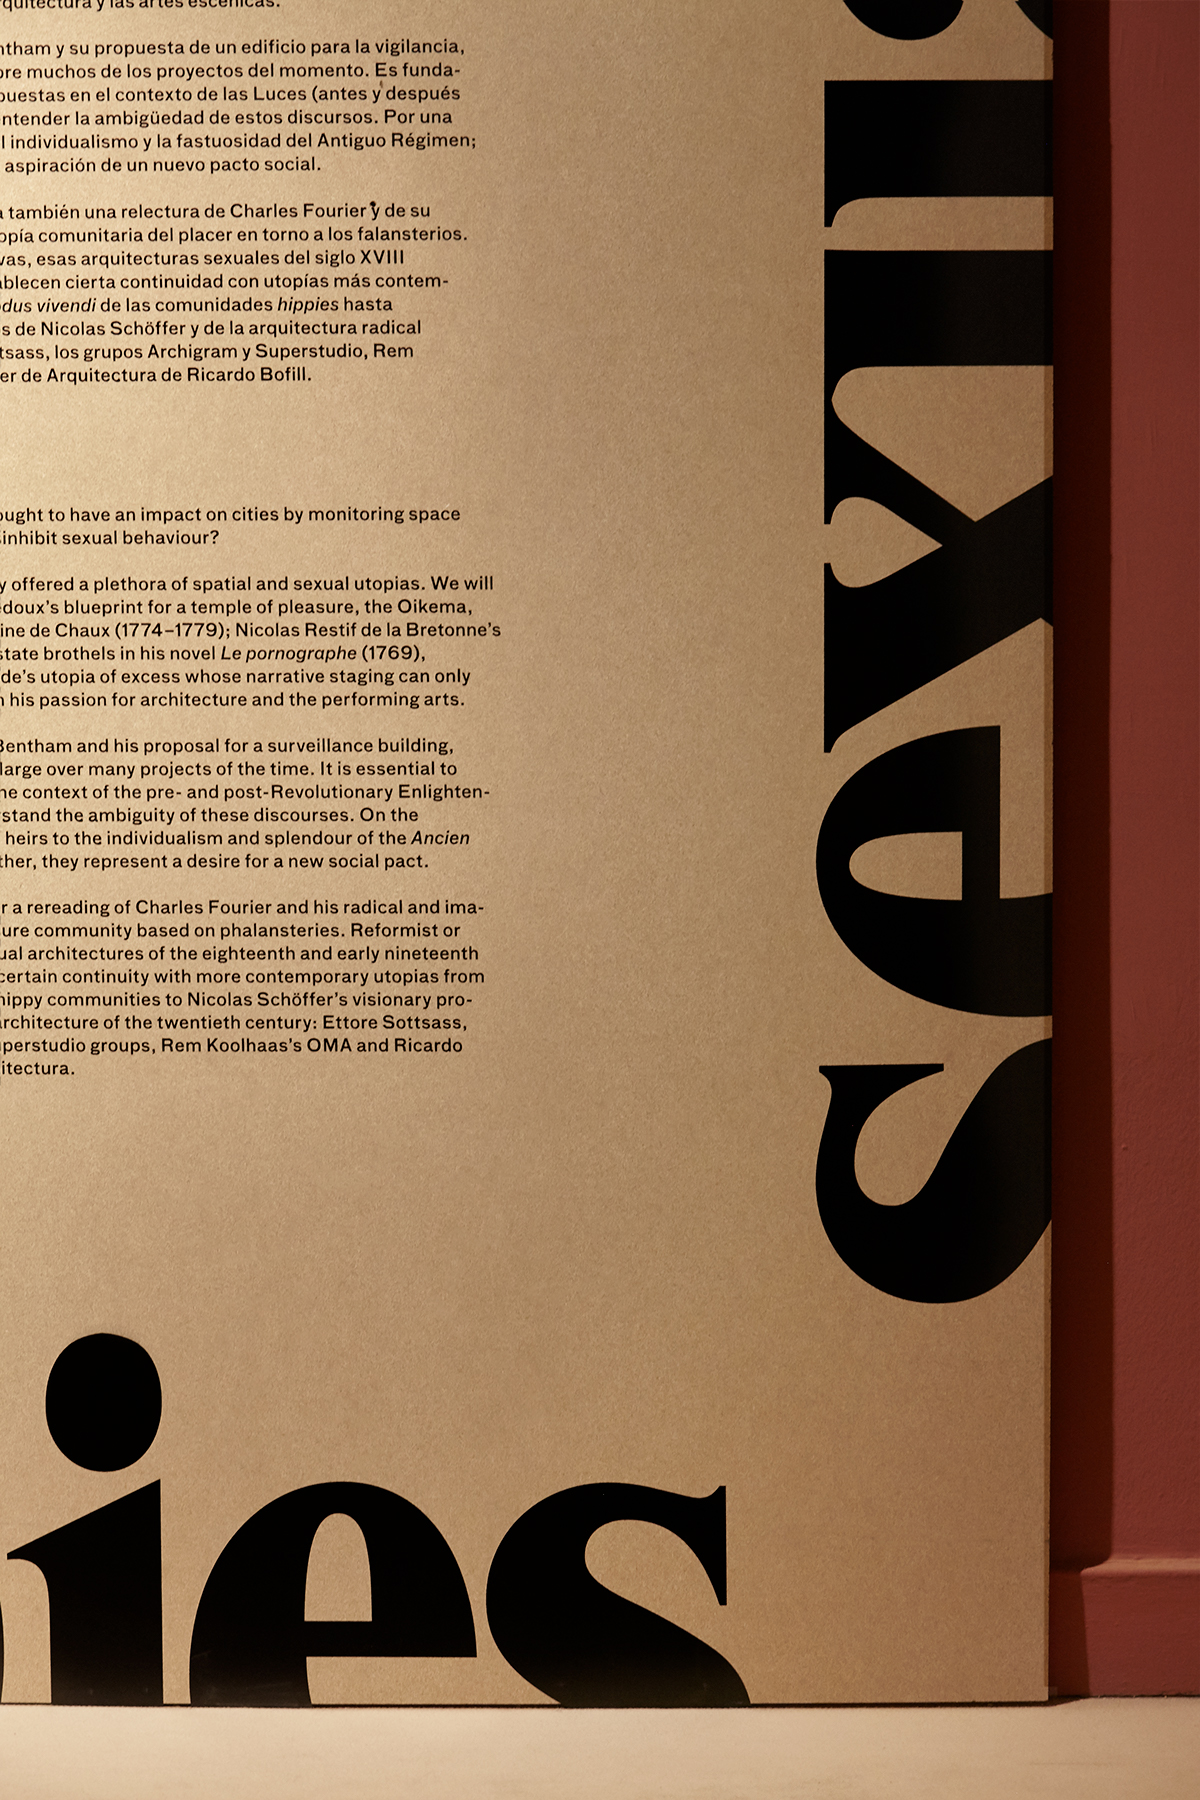 Exhibition  sex architecture cccb typography